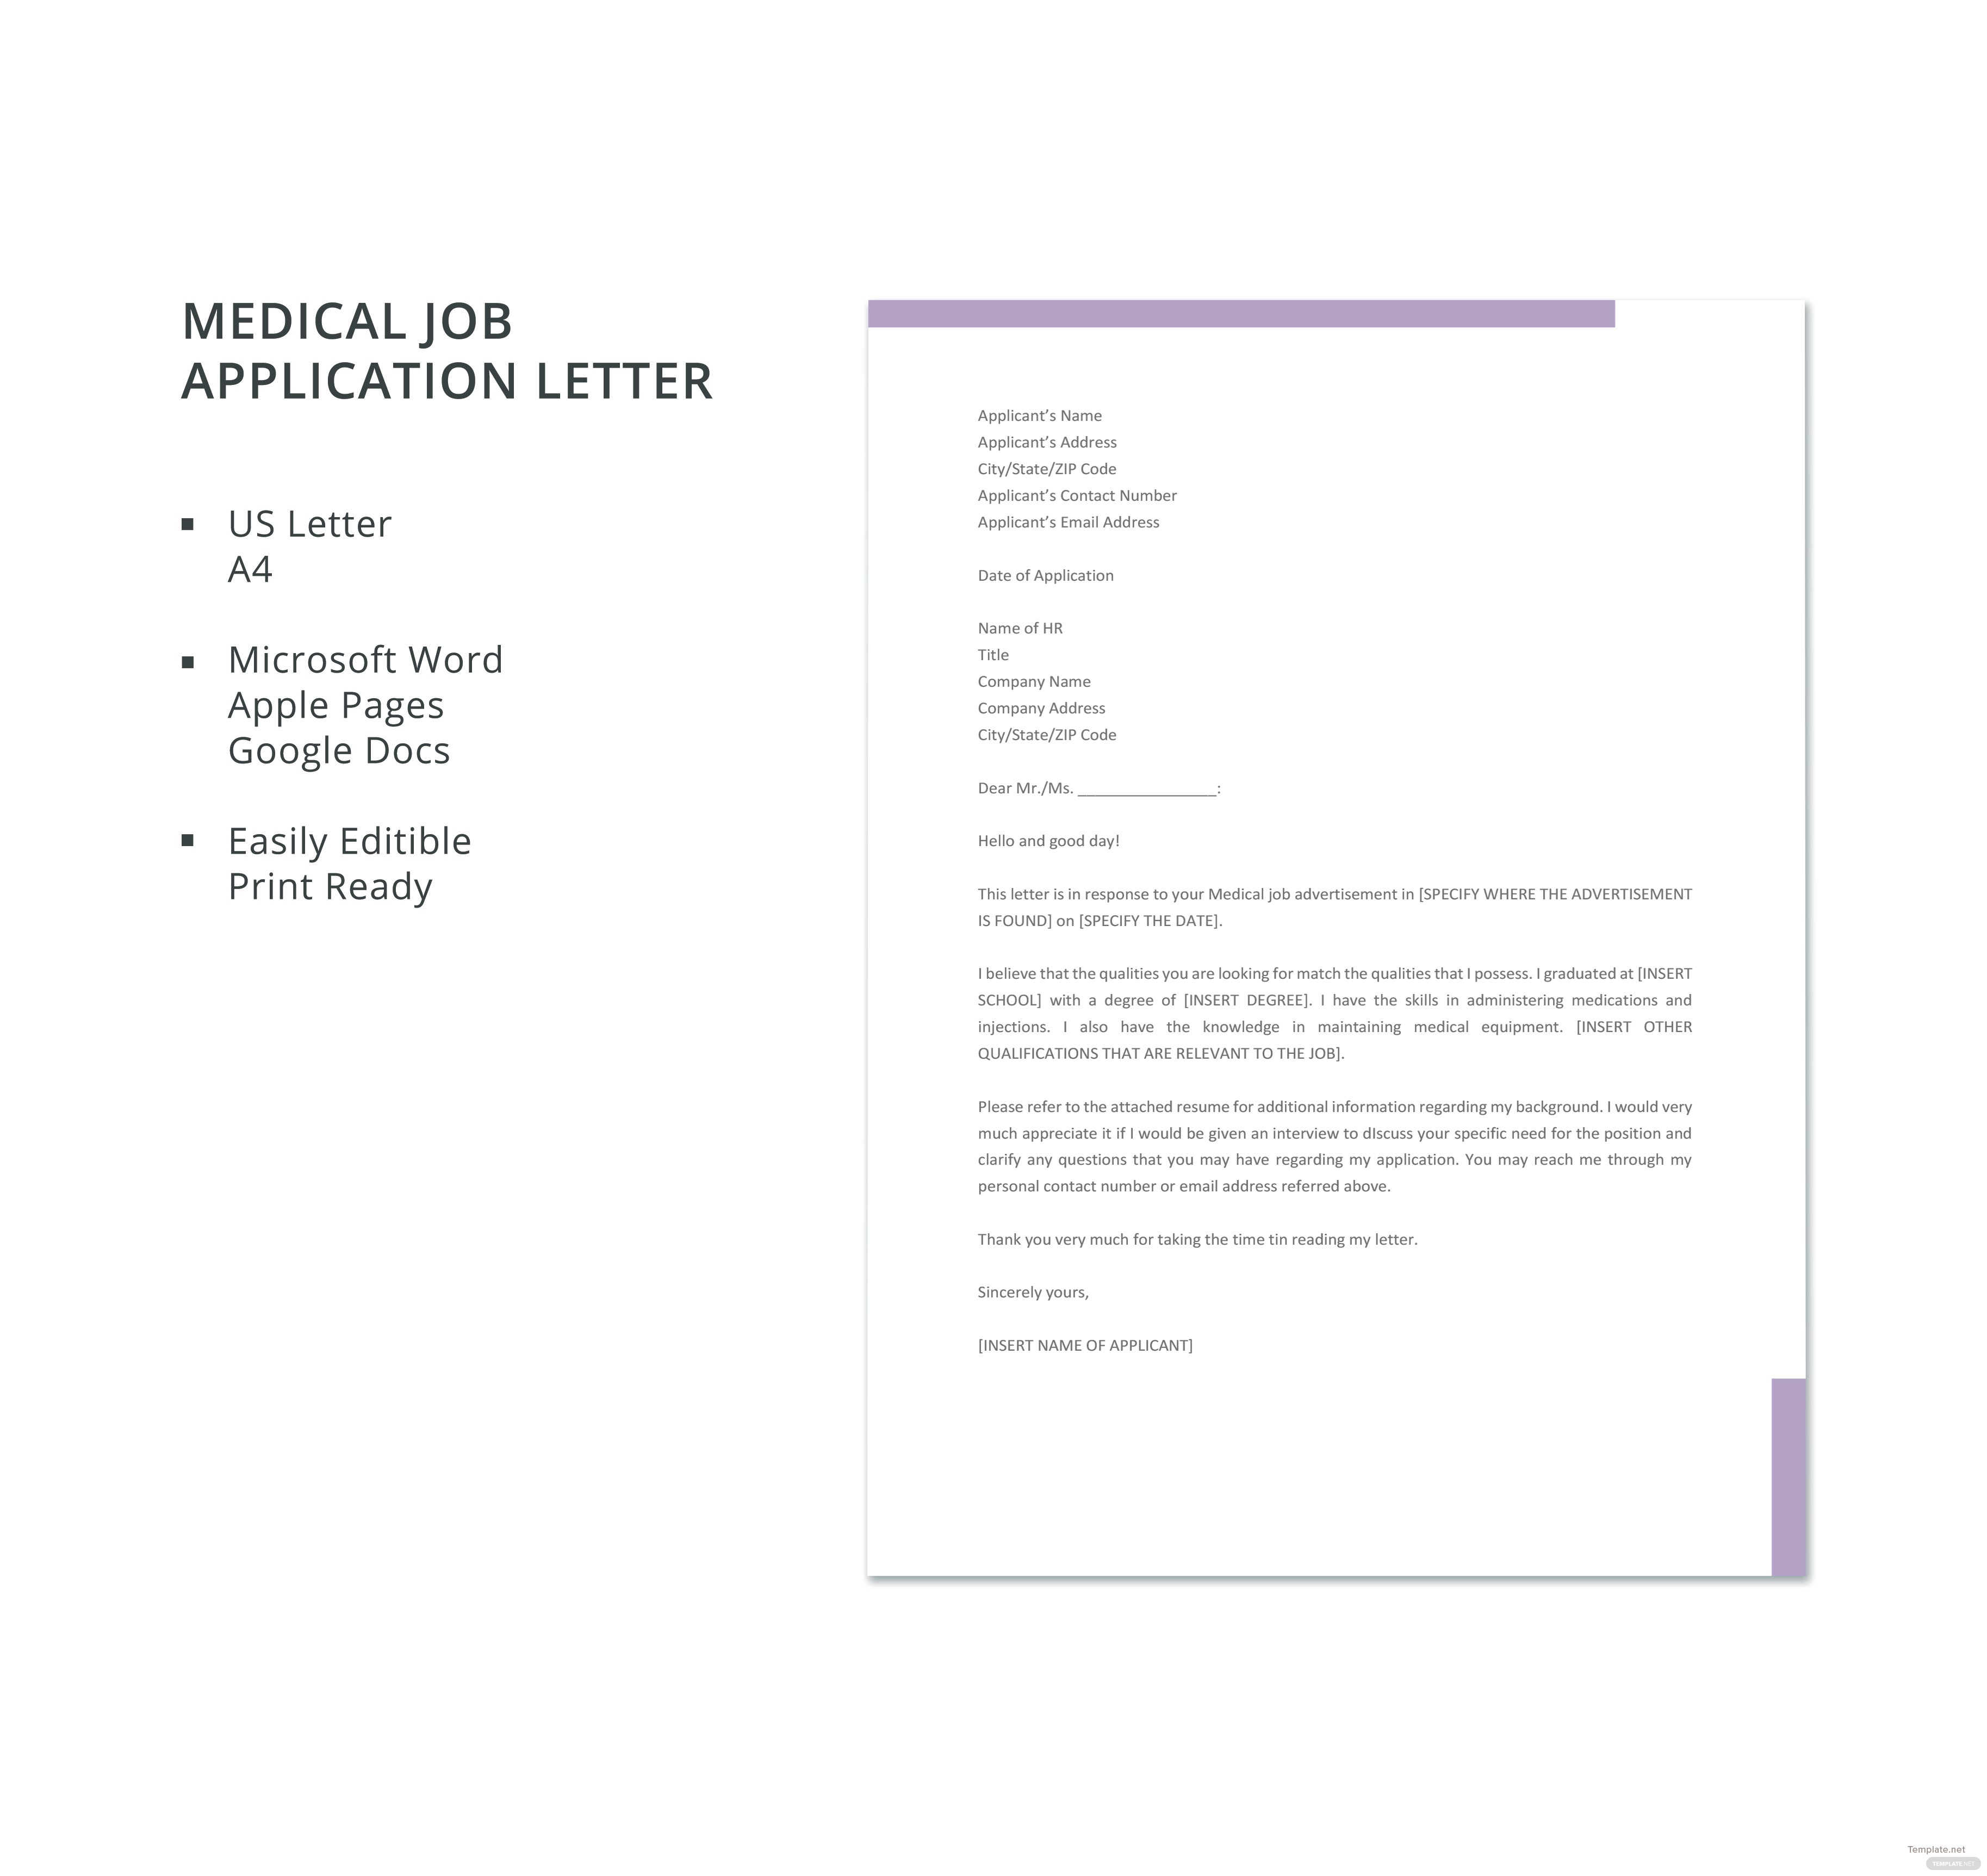 free medical job application letter template in microsoft word apple pages google docs. Black Bedroom Furniture Sets. Home Design Ideas